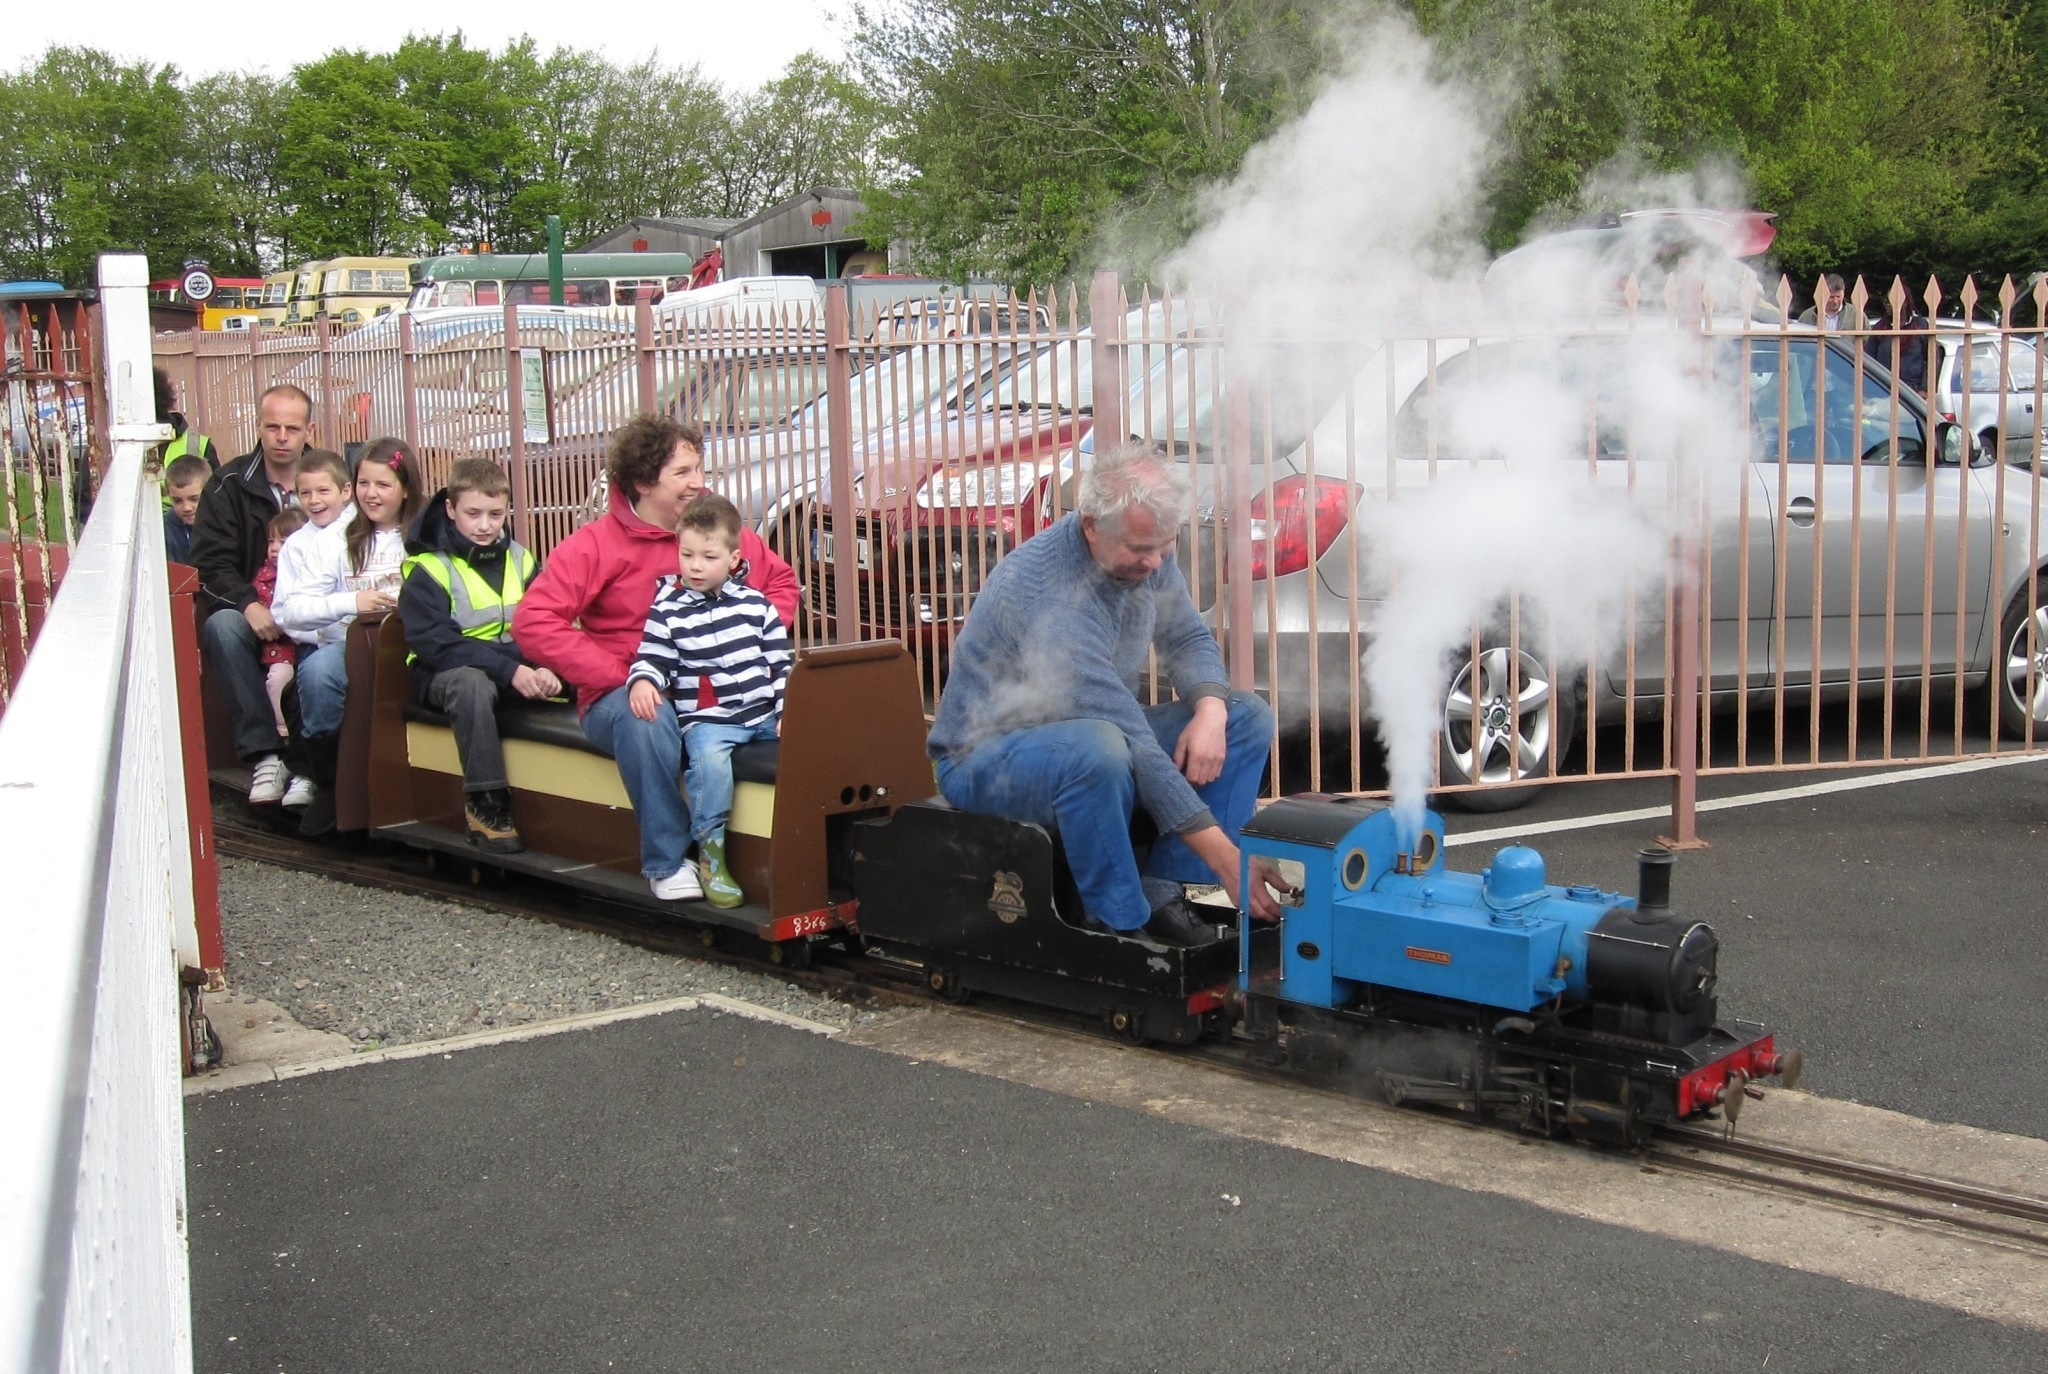 The children's train at Wythall Transport Museum